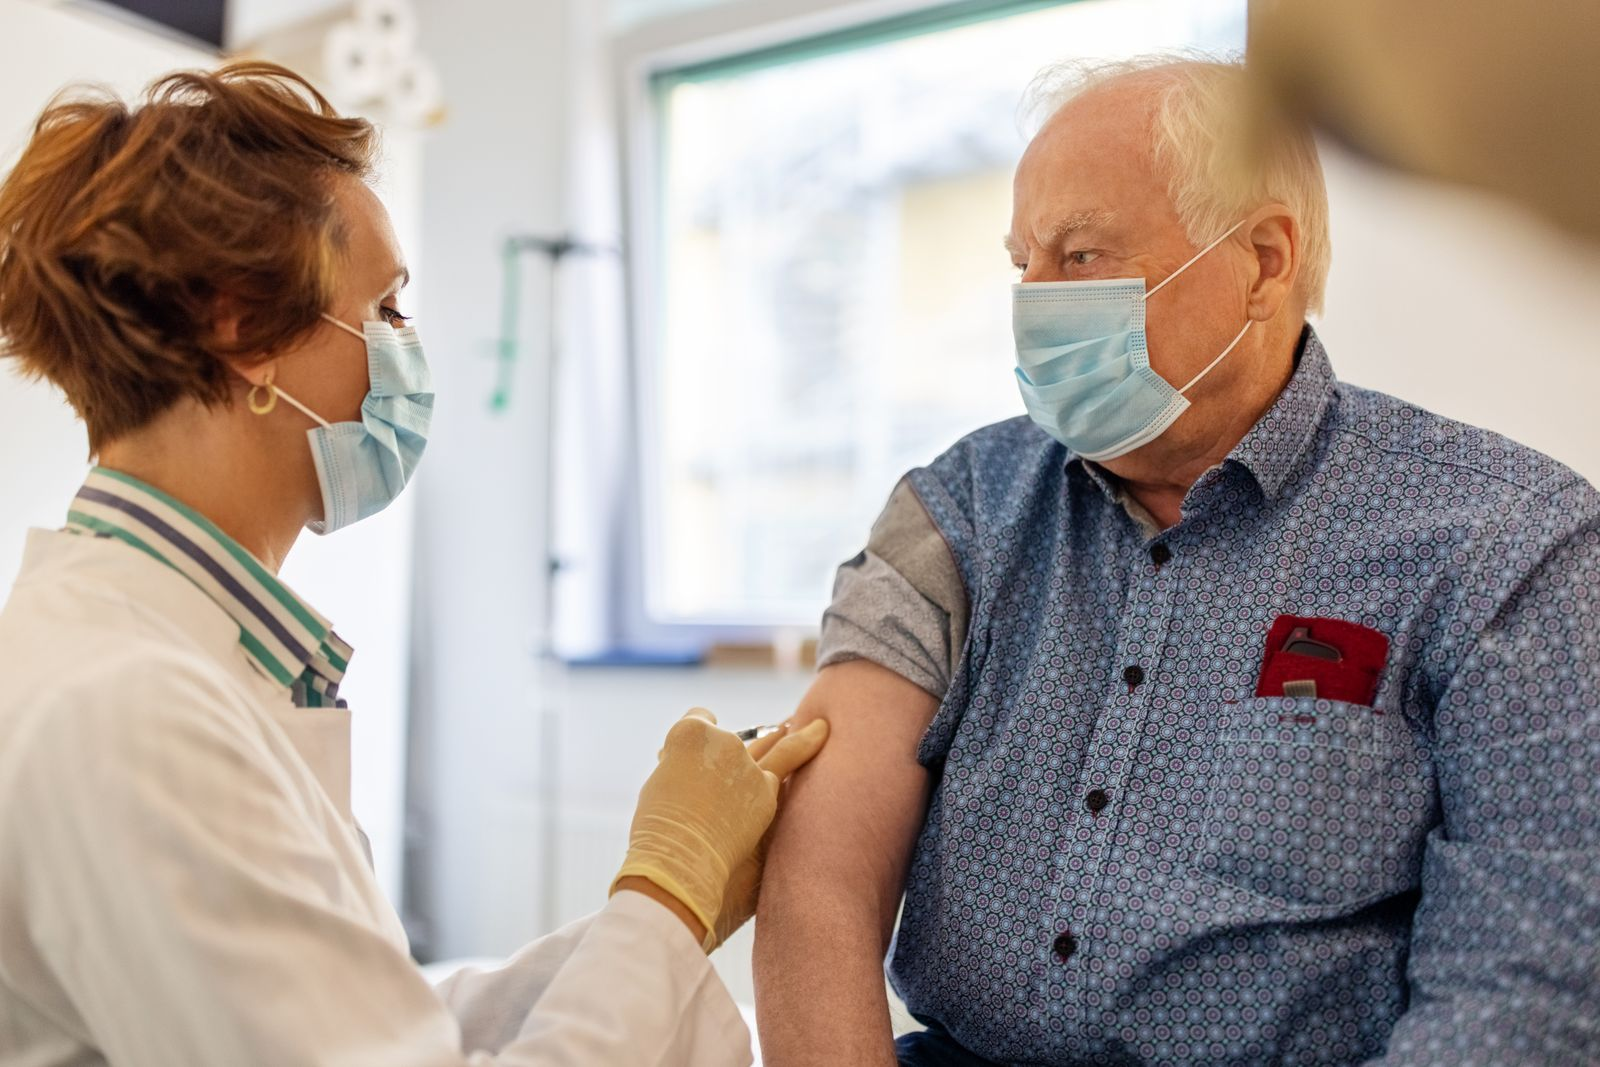 General practitioner giving flu shot to a senior man in clinic